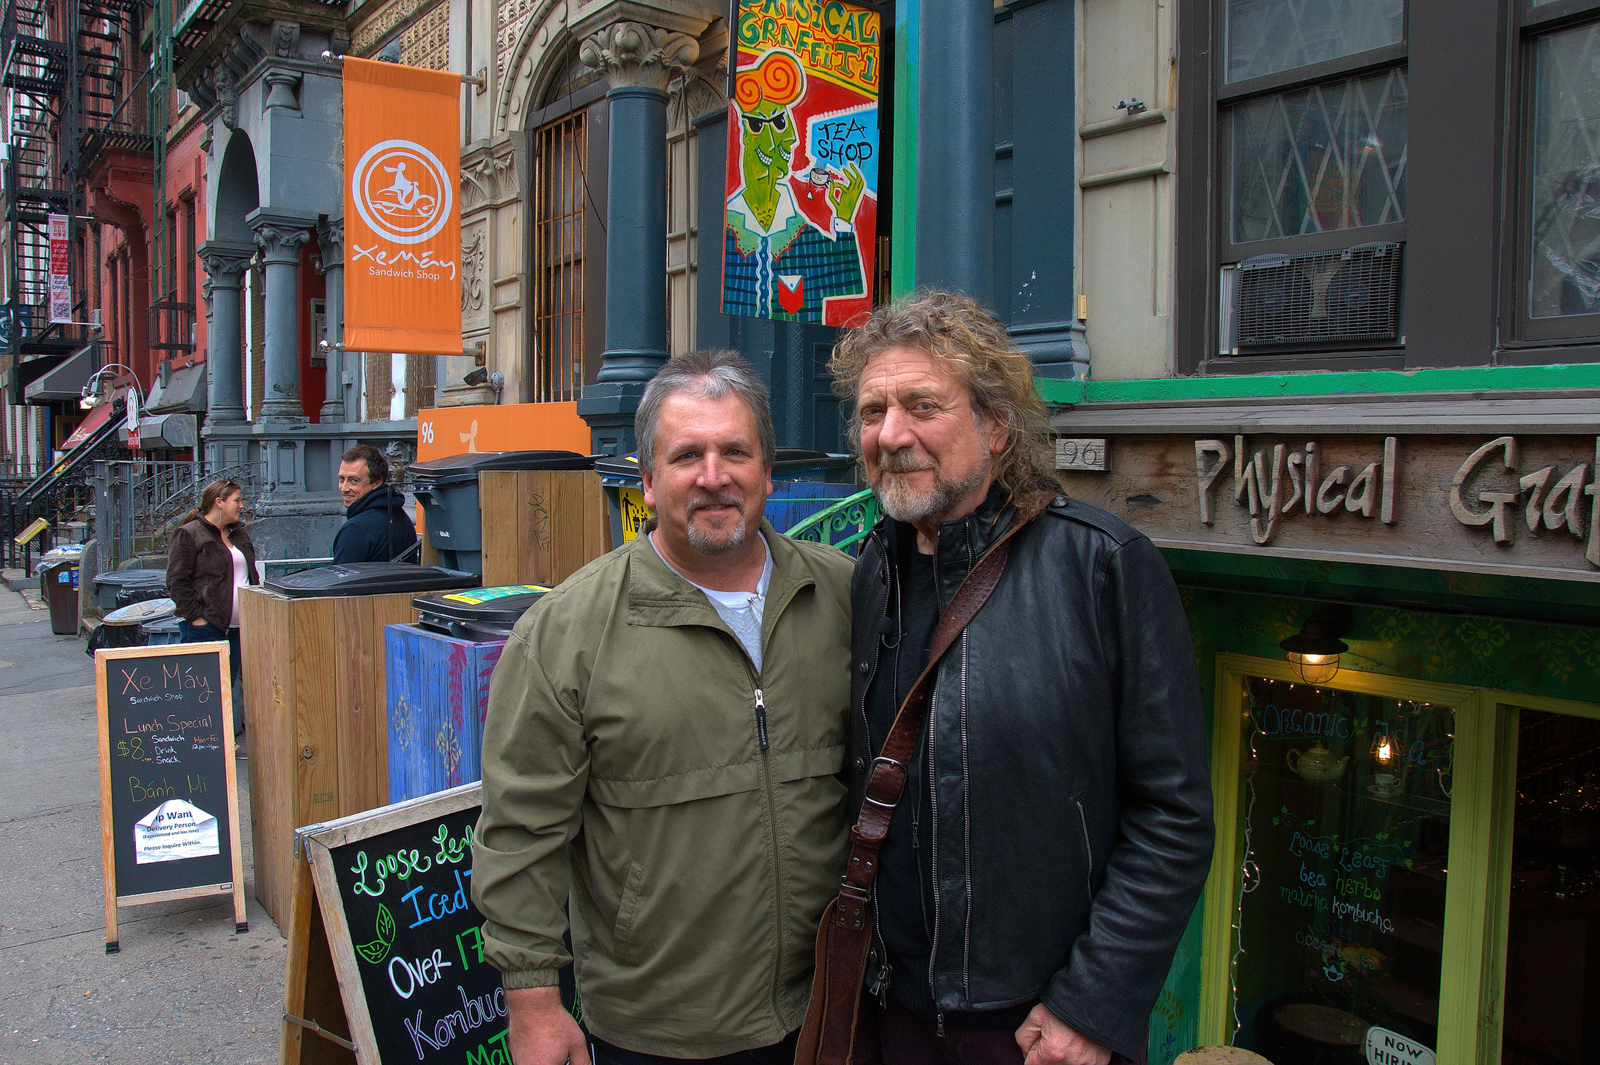 Led Zeppelin Robert Plant New York 2012 Physical Graffiti Building Location